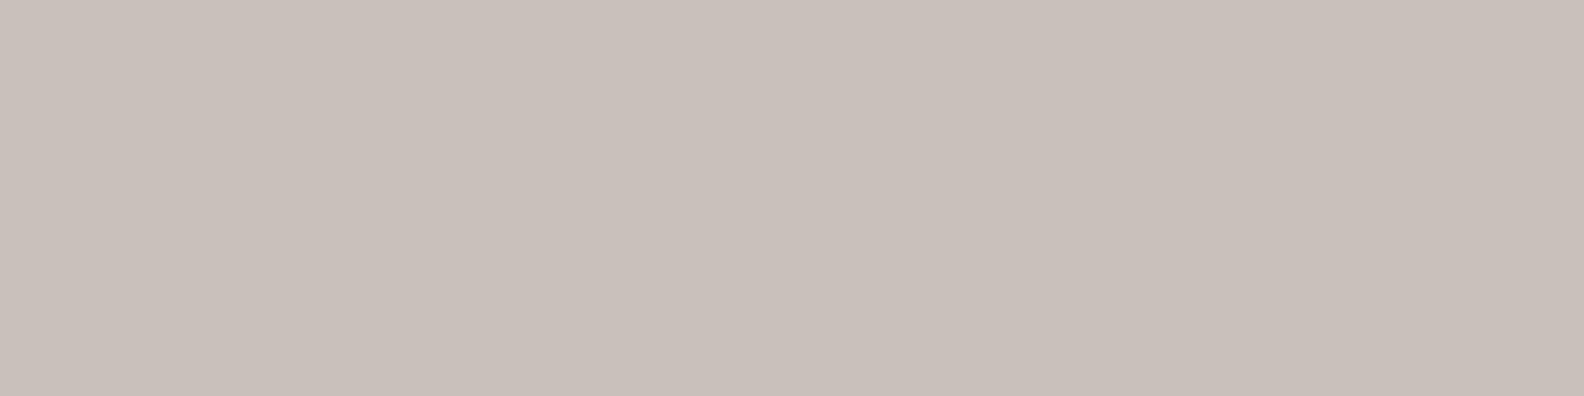 1584x396 Pale Silver Solid Color Background